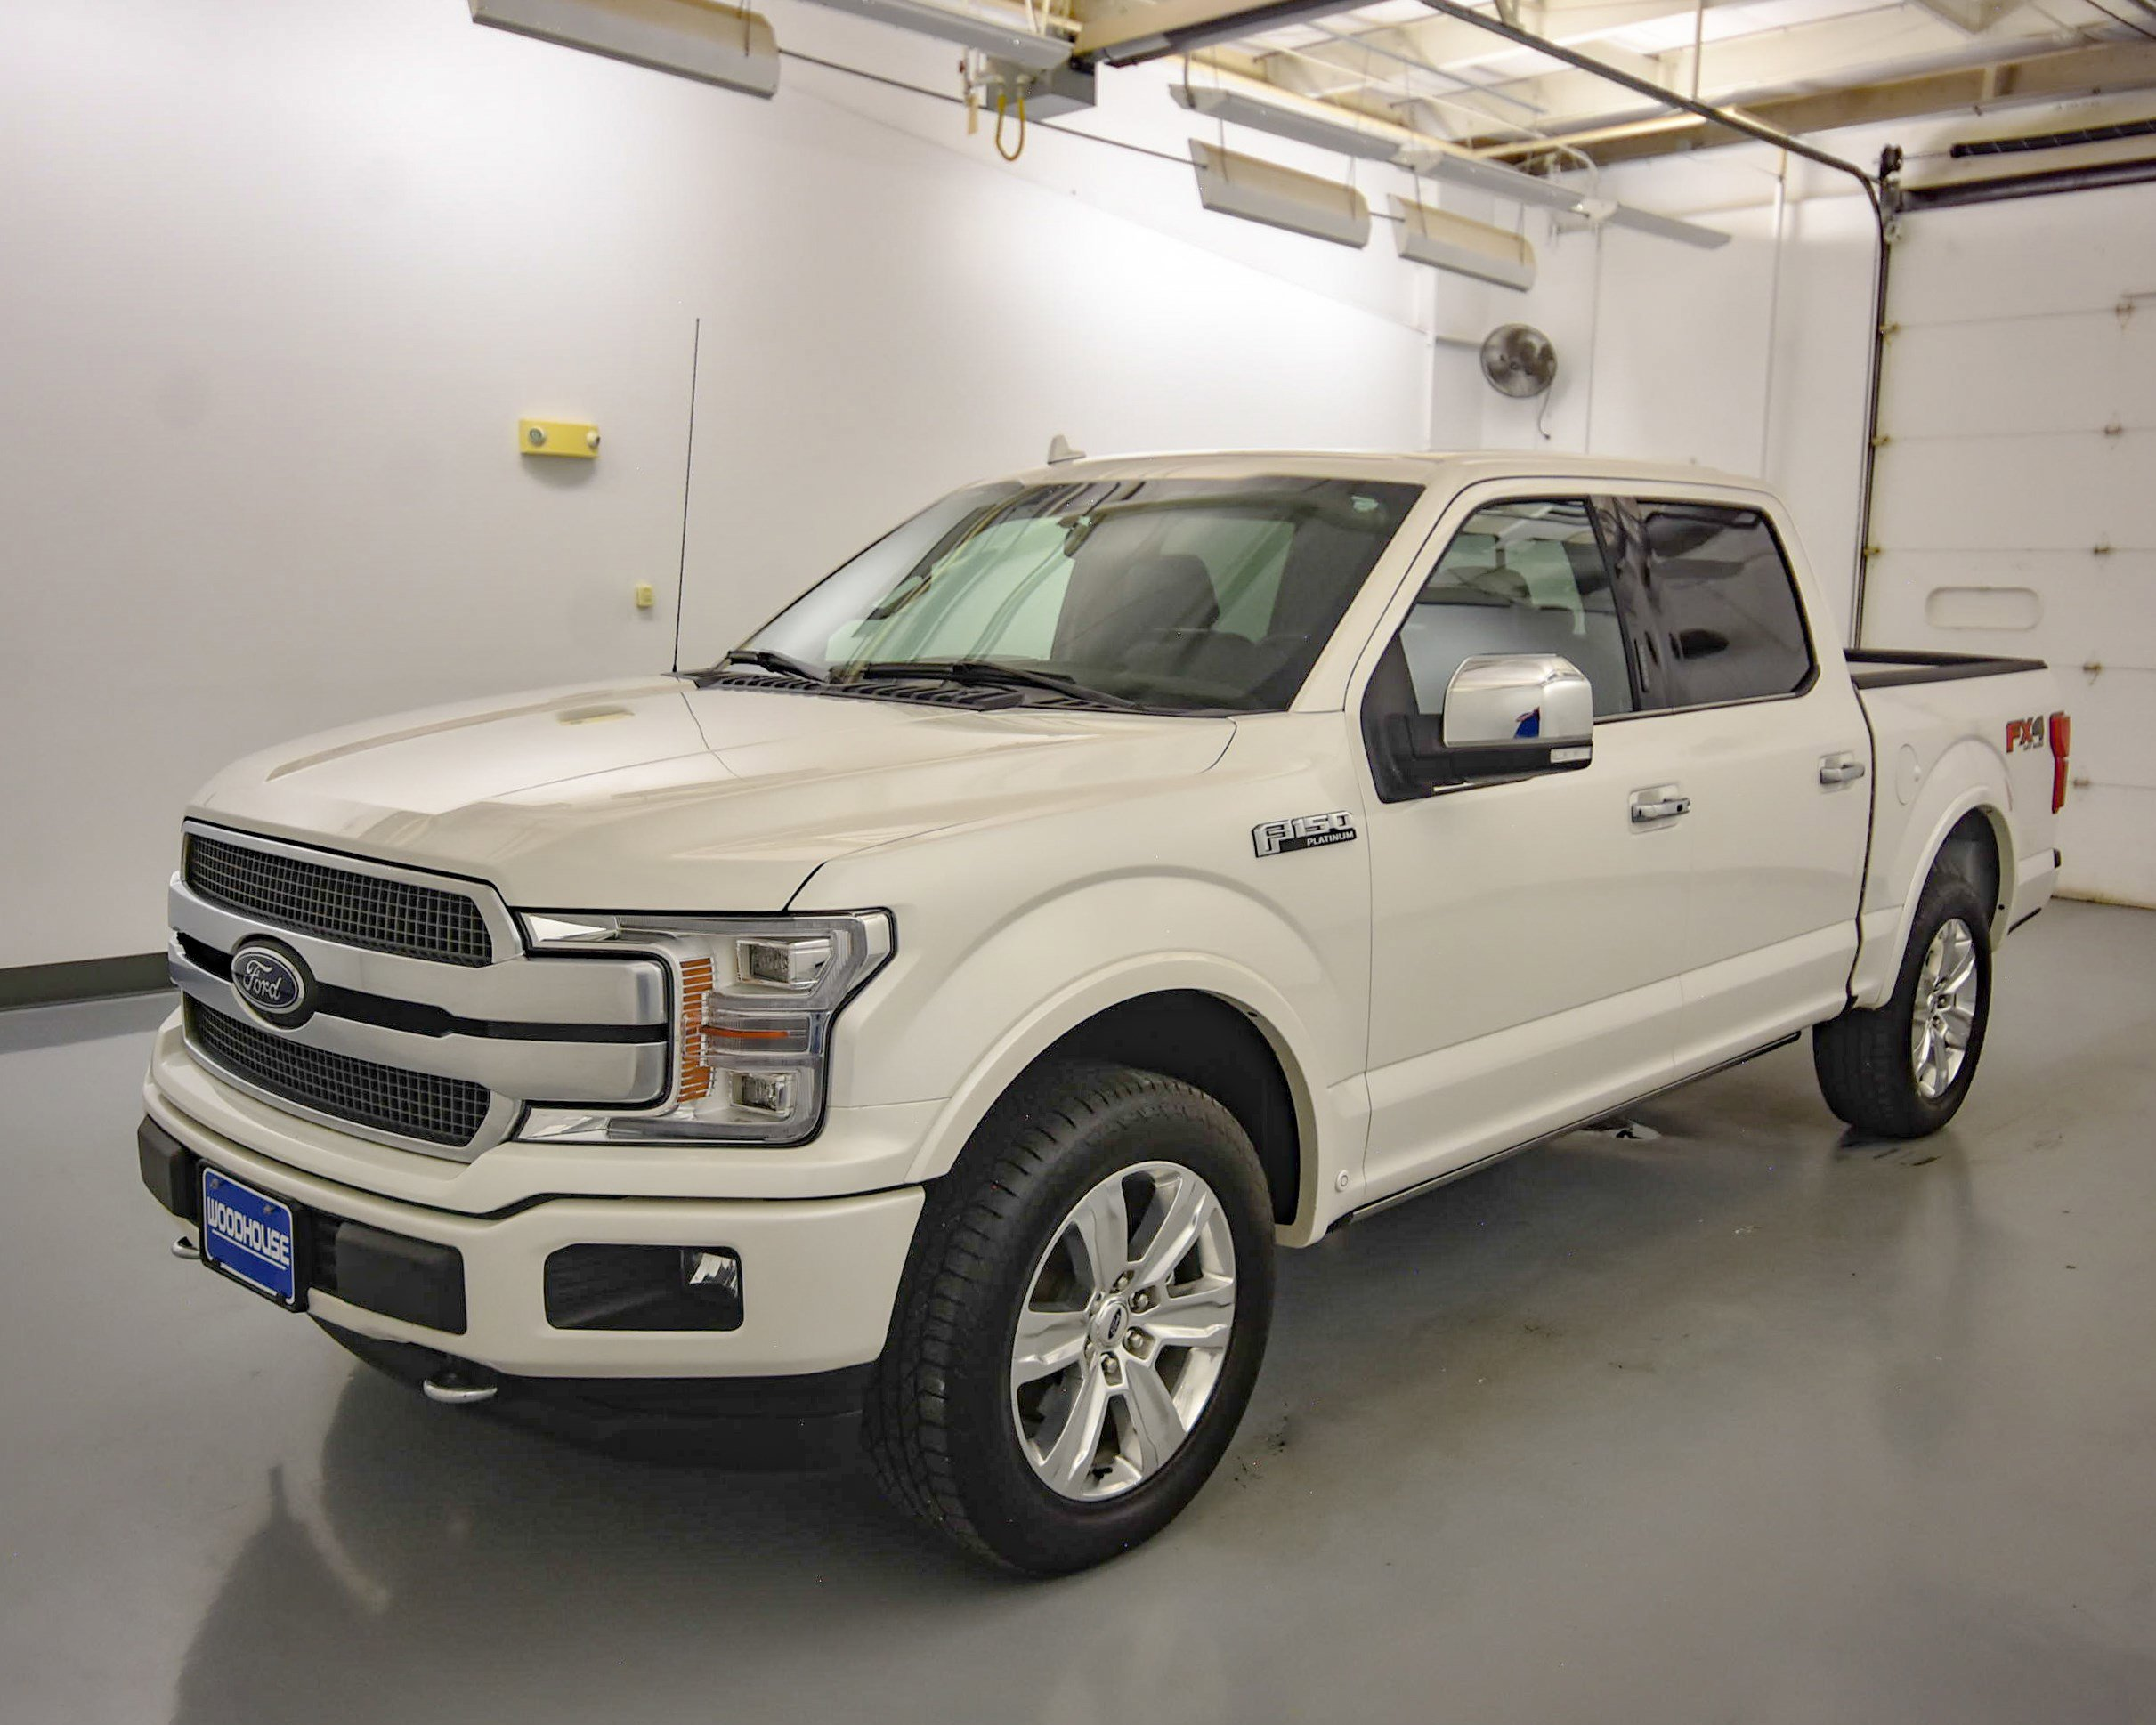 Pre-Owned 2019 Ford F-150 Platinum 4WD Super Crew